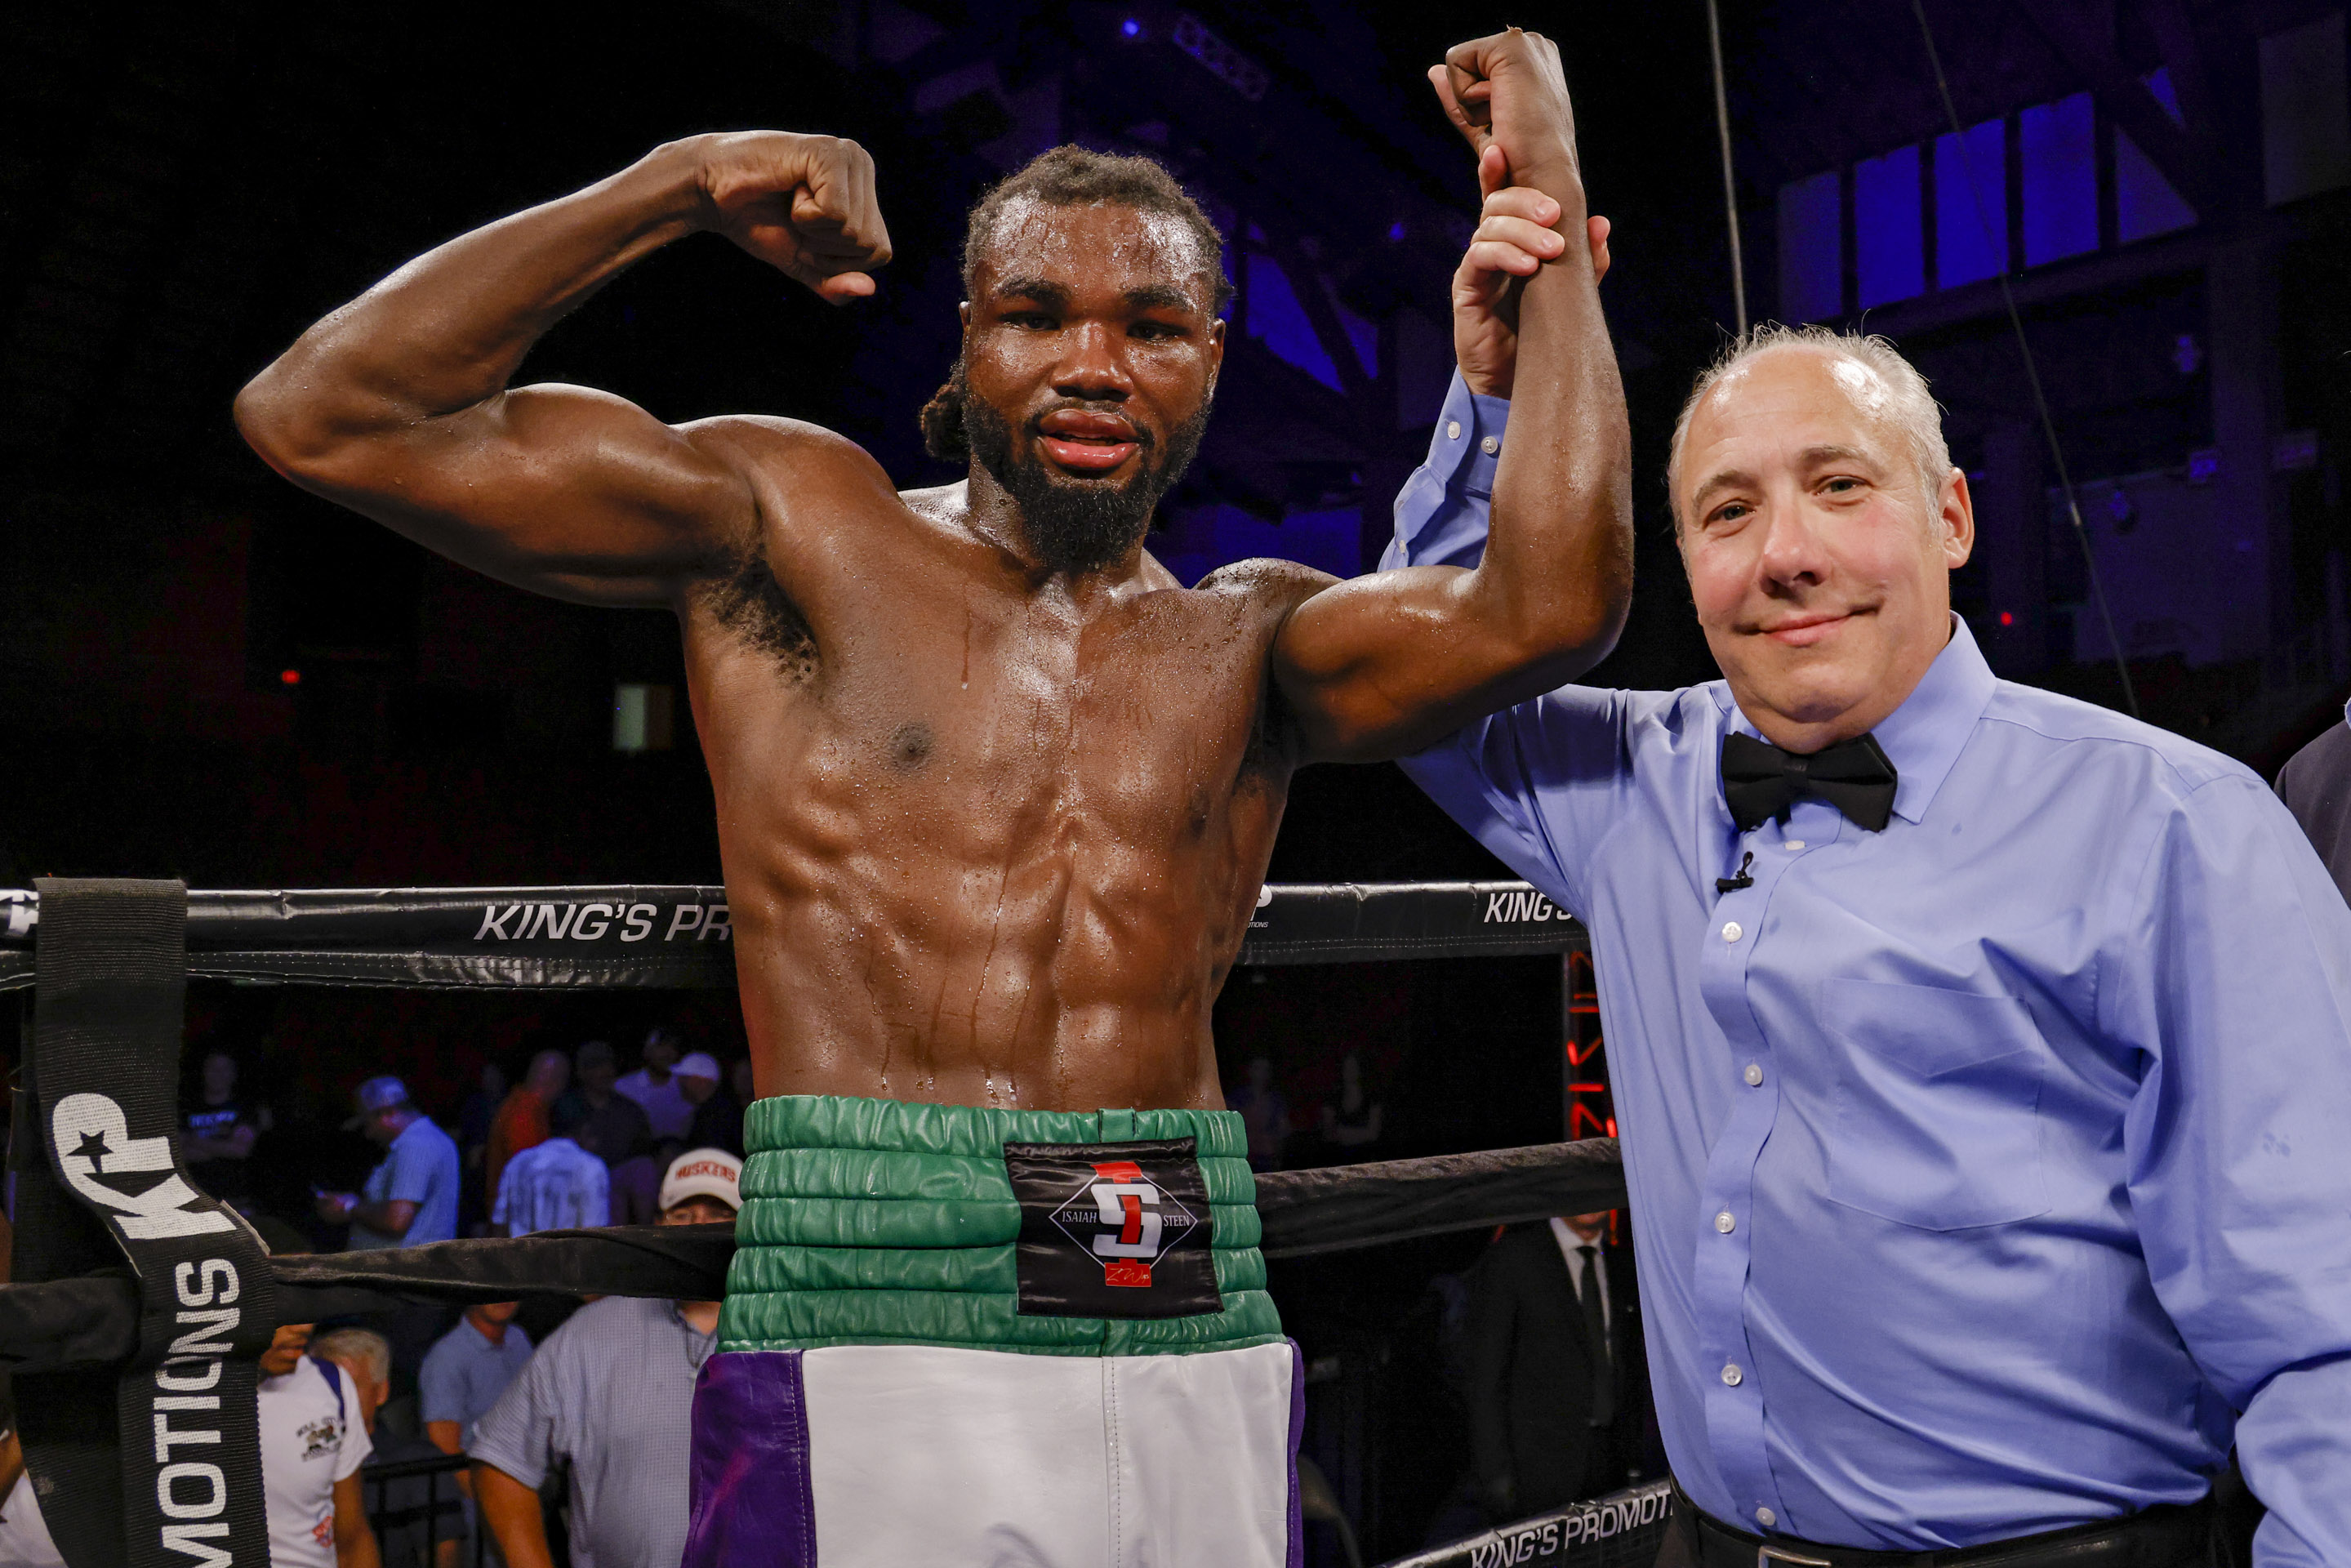 Isaiah Steen wins convincingly in the main event on the 20th anniversary  ShoBox show - The Ring